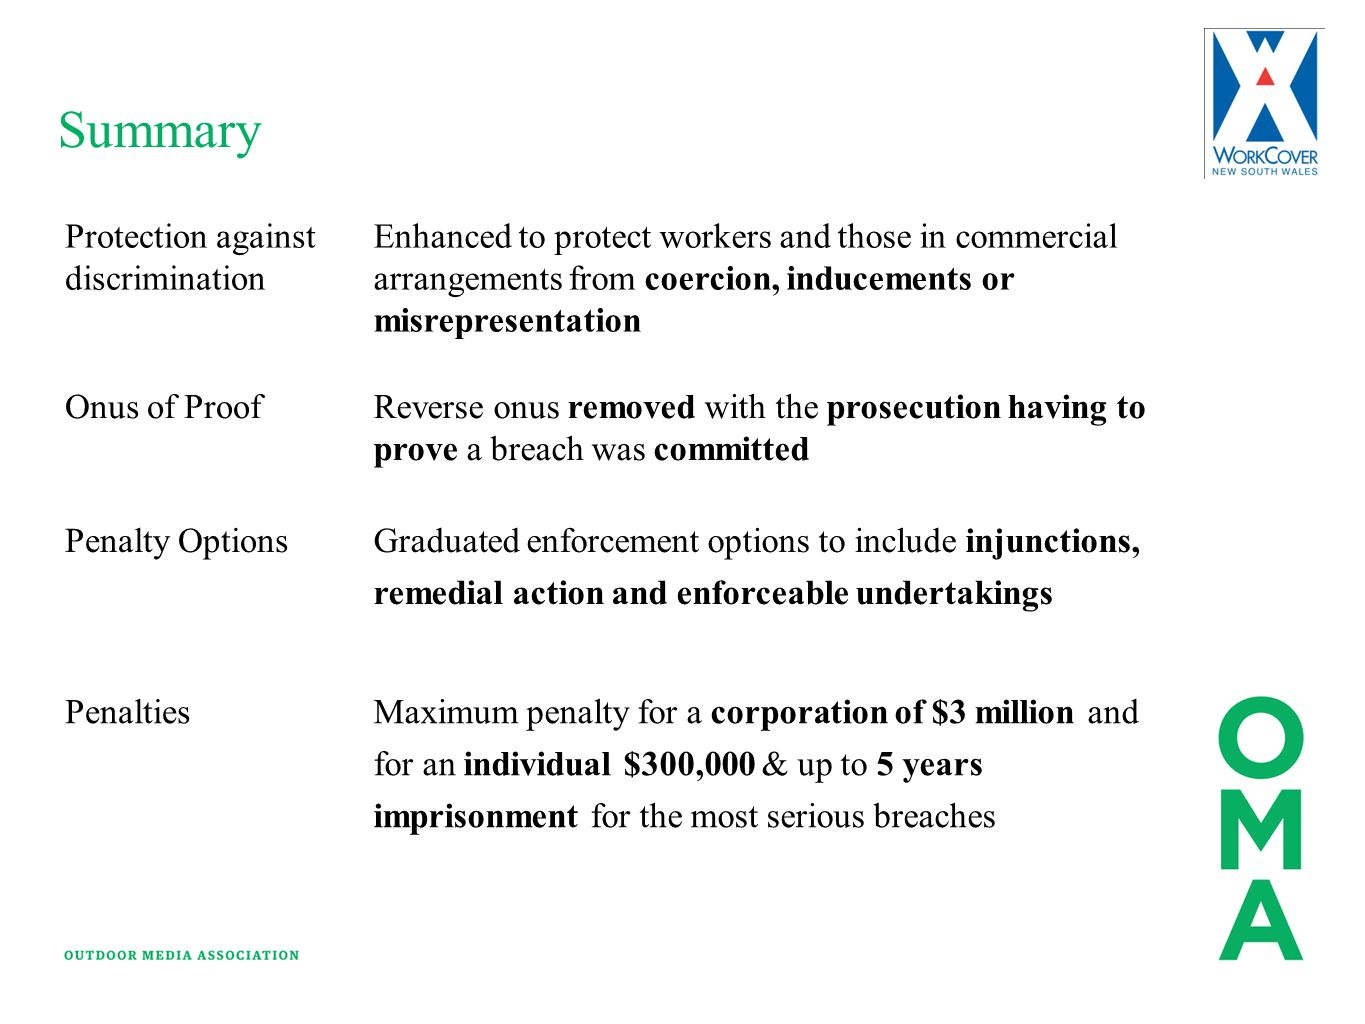 Summary Protection against discrimination Enhanced to protect workers and those in commercial arrangements from coercion, inducements or misrepresenta